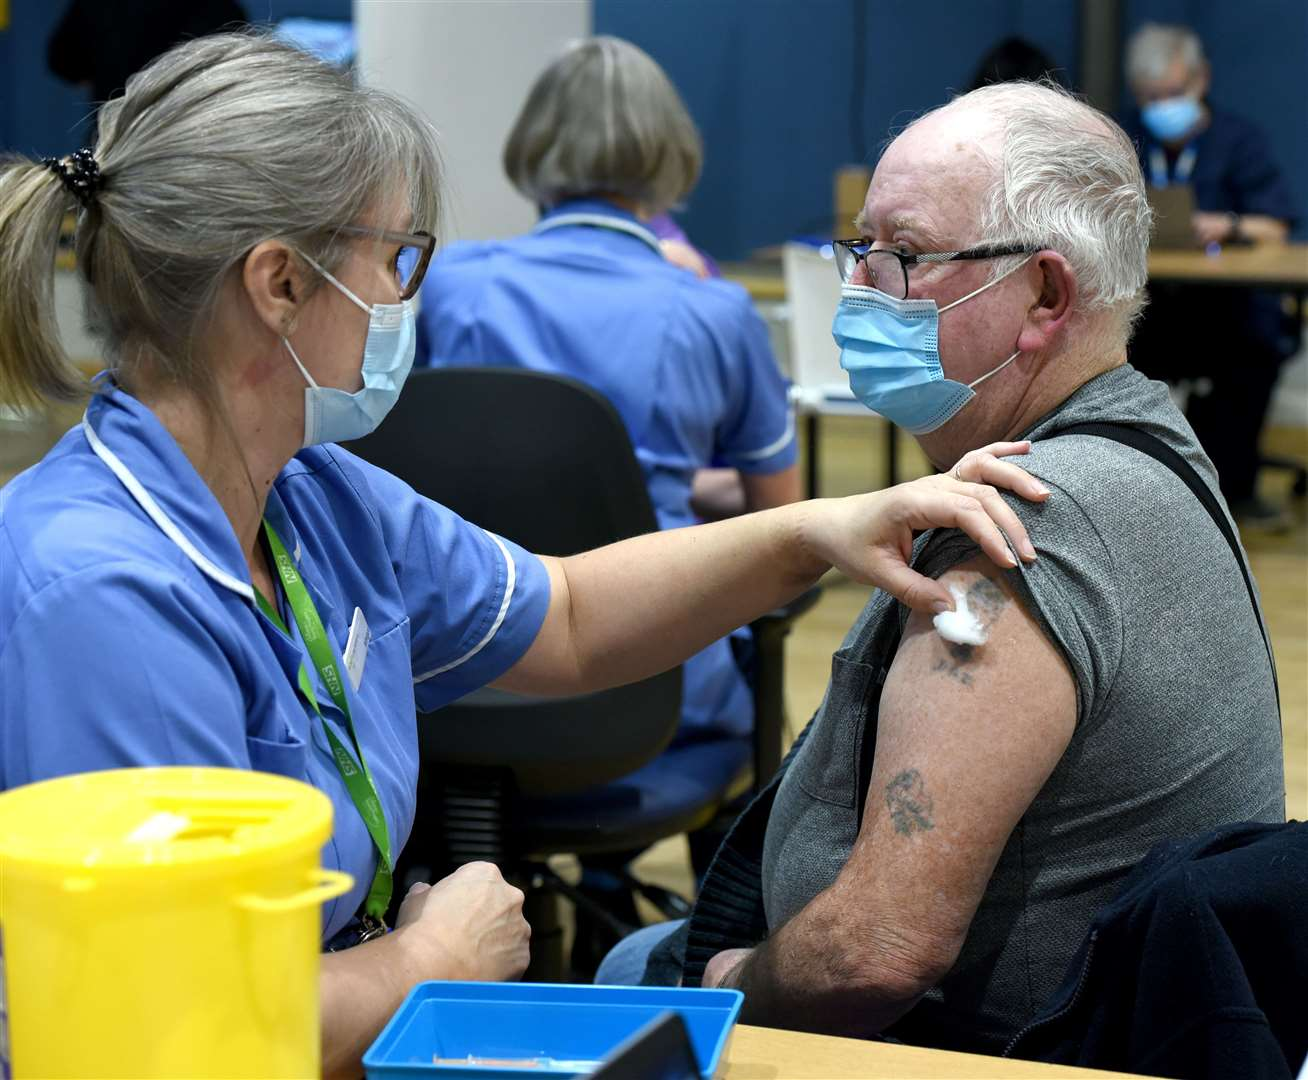 Mass Coronavirus Vaccination Centre now open at the King's Lynn Corn Exchange, Tuesday Market Place...Peter Smith having his Vaccination. (44205441)